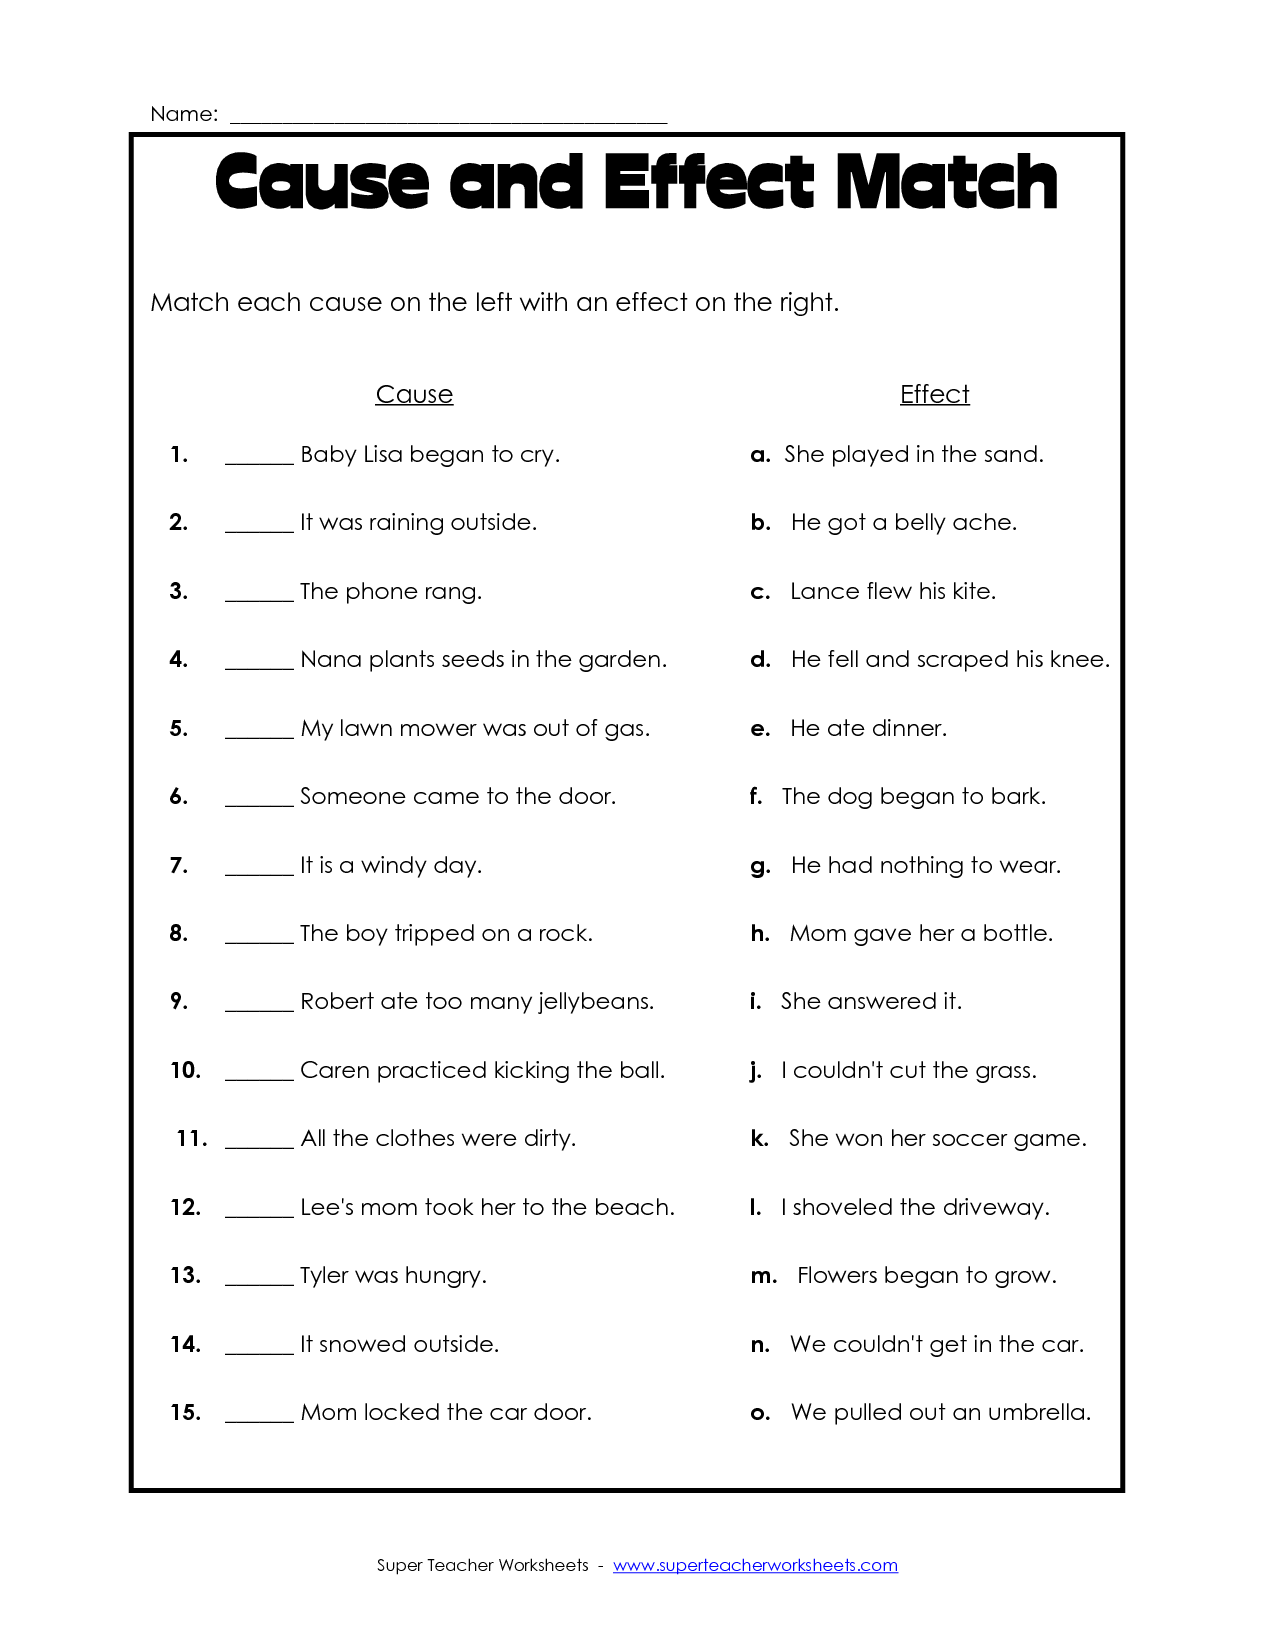 Worksheets  Cause and Effect Worksheet - modify to become observation